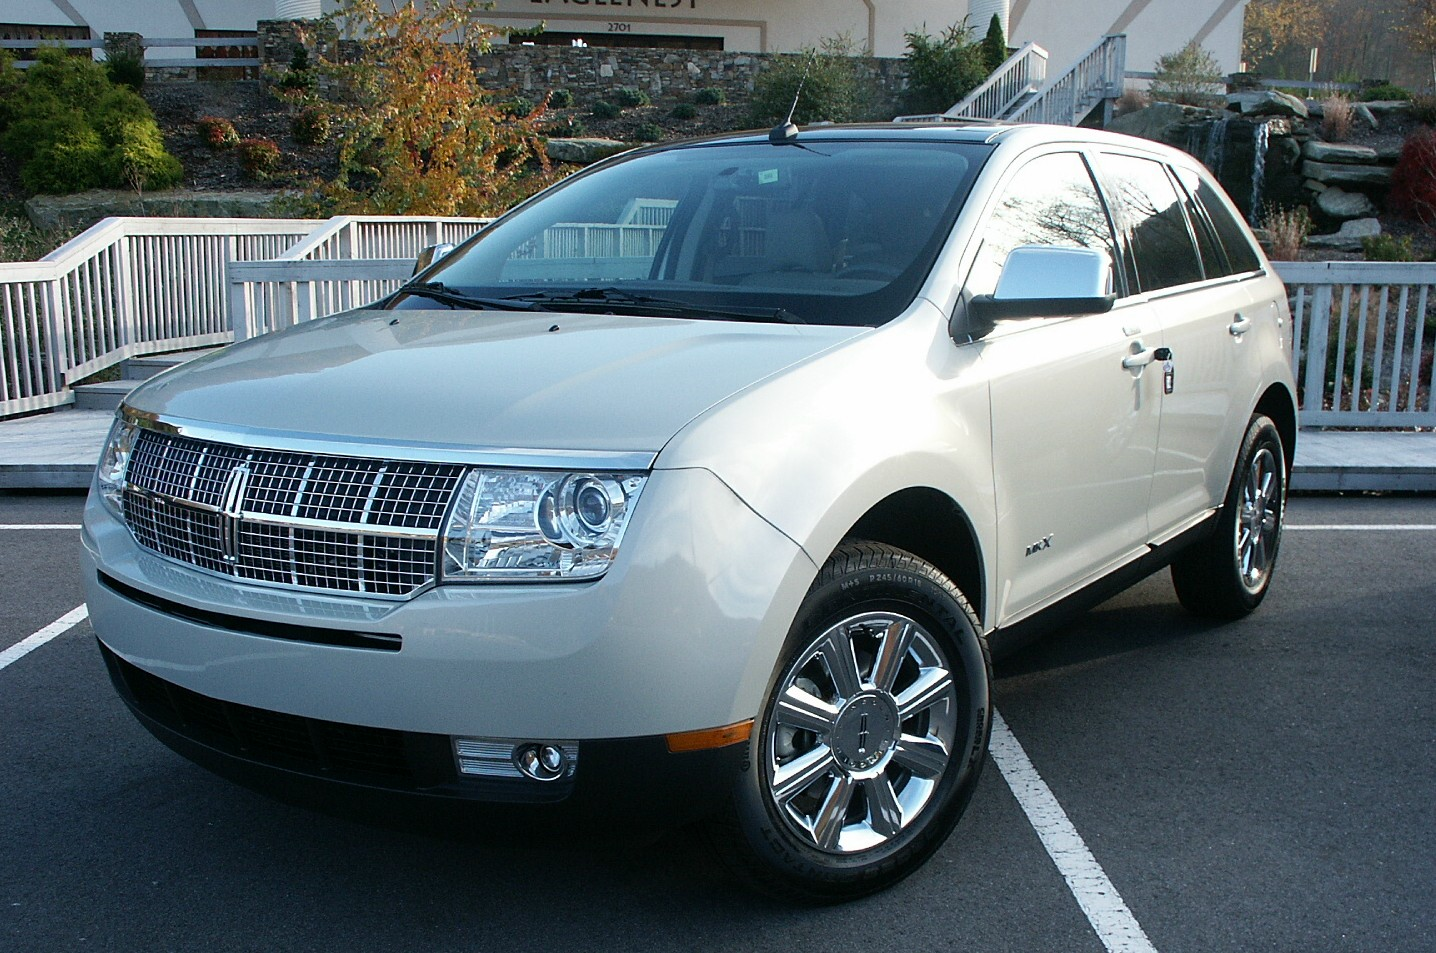 2007 Lincoln Mkx #10